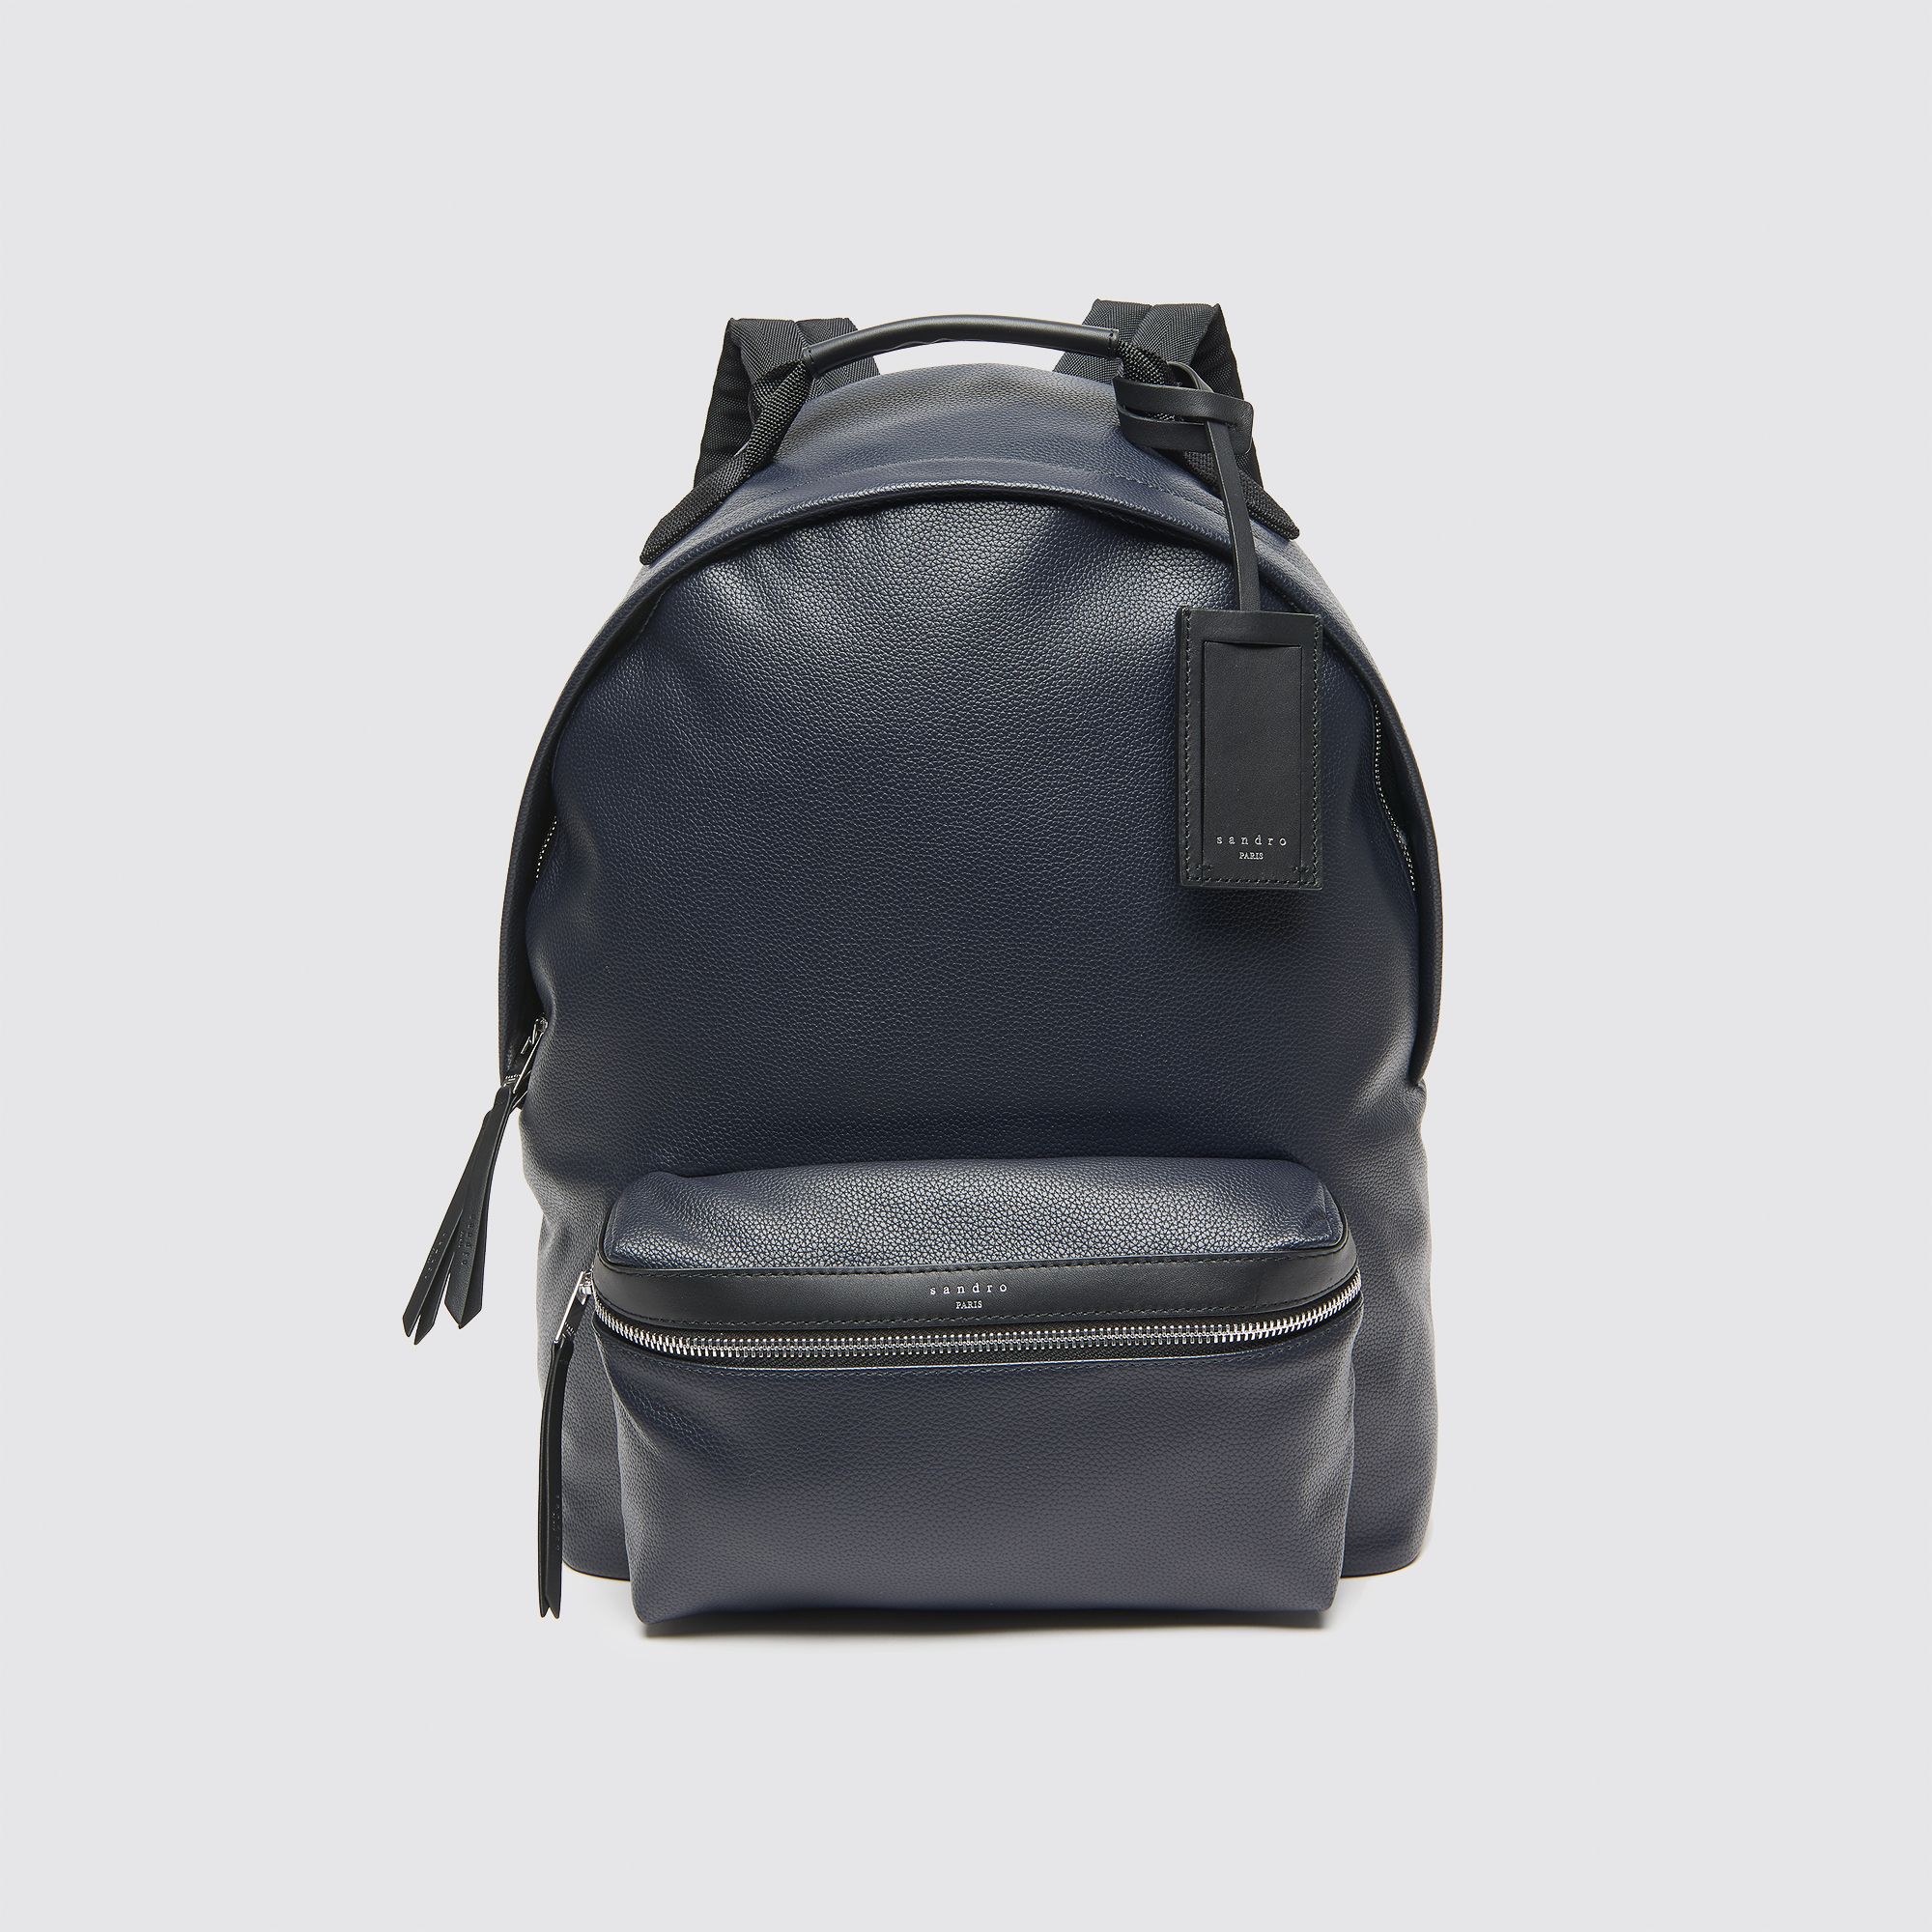 26c88021c5 ... Coated fabric backpack   Bags color Black ...